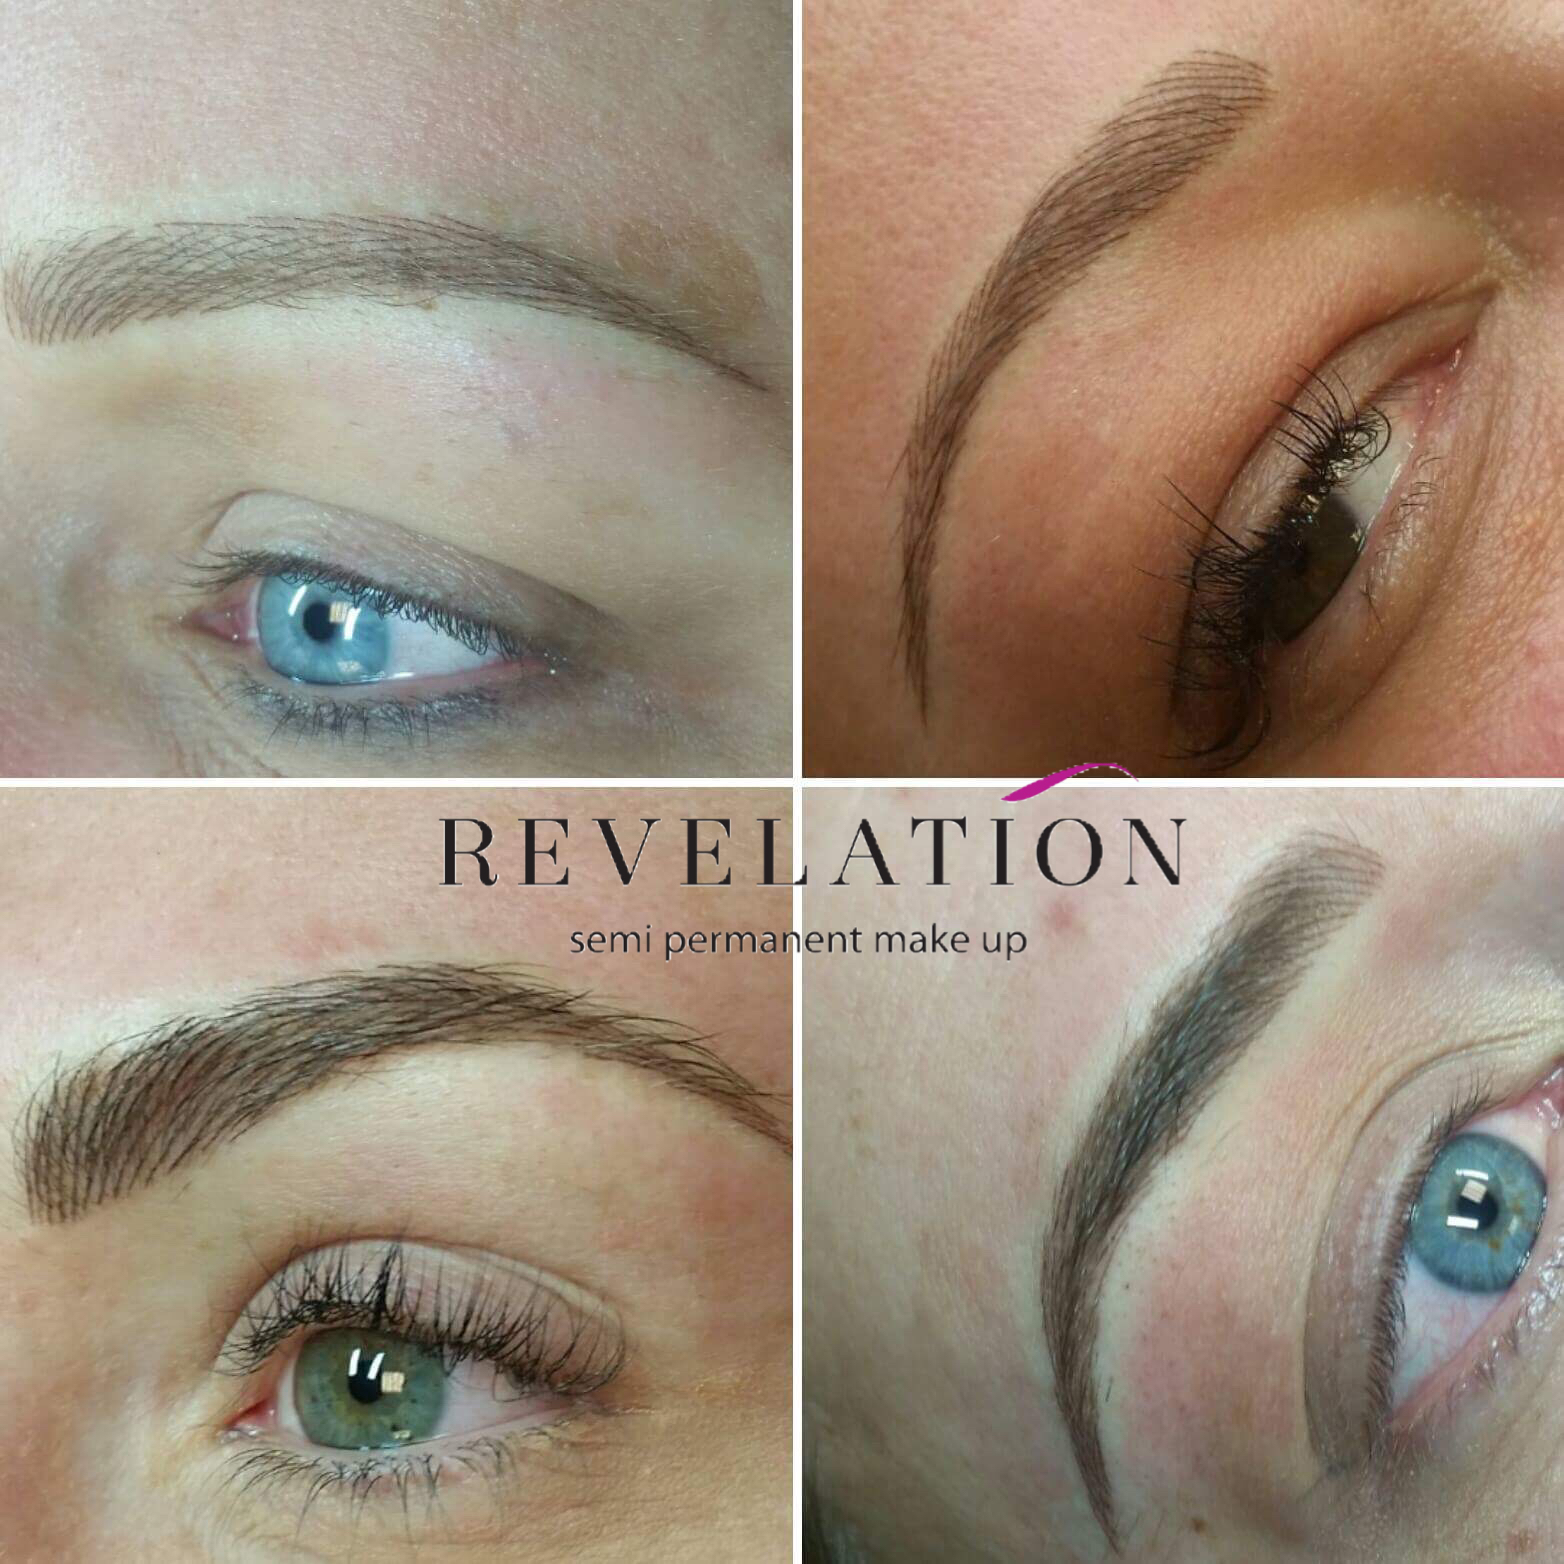 Microblading or Semi Permanent Make Up?